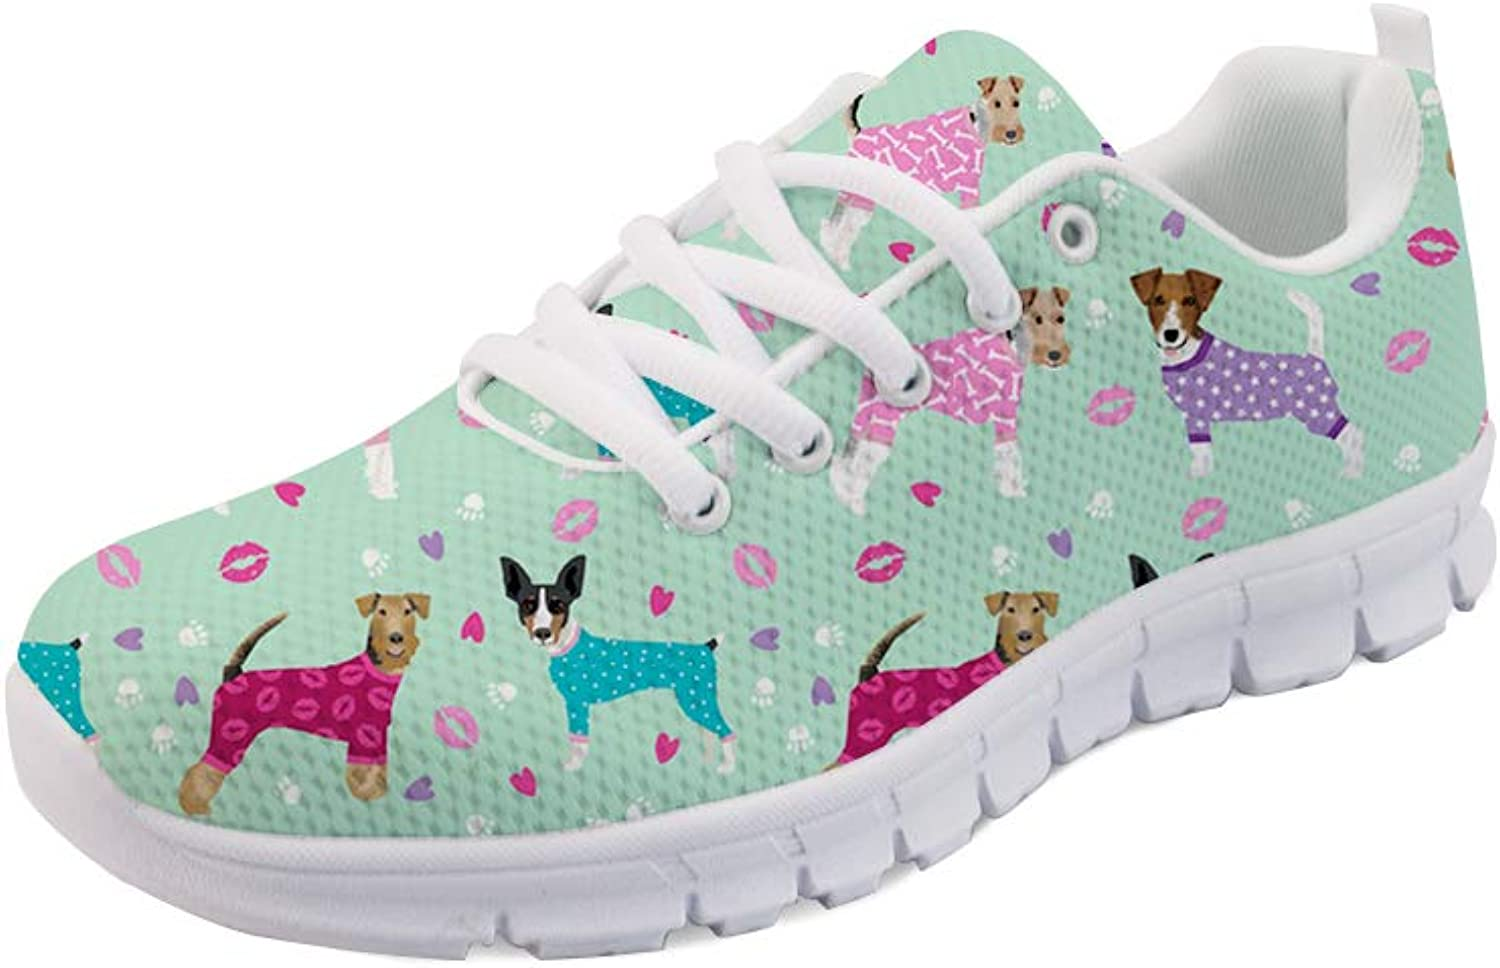 FOR U DESIGNS Dogs Cartoon Printed Boys Girls Sports Sneakers Women Men Casual shoes Comfortable Flats